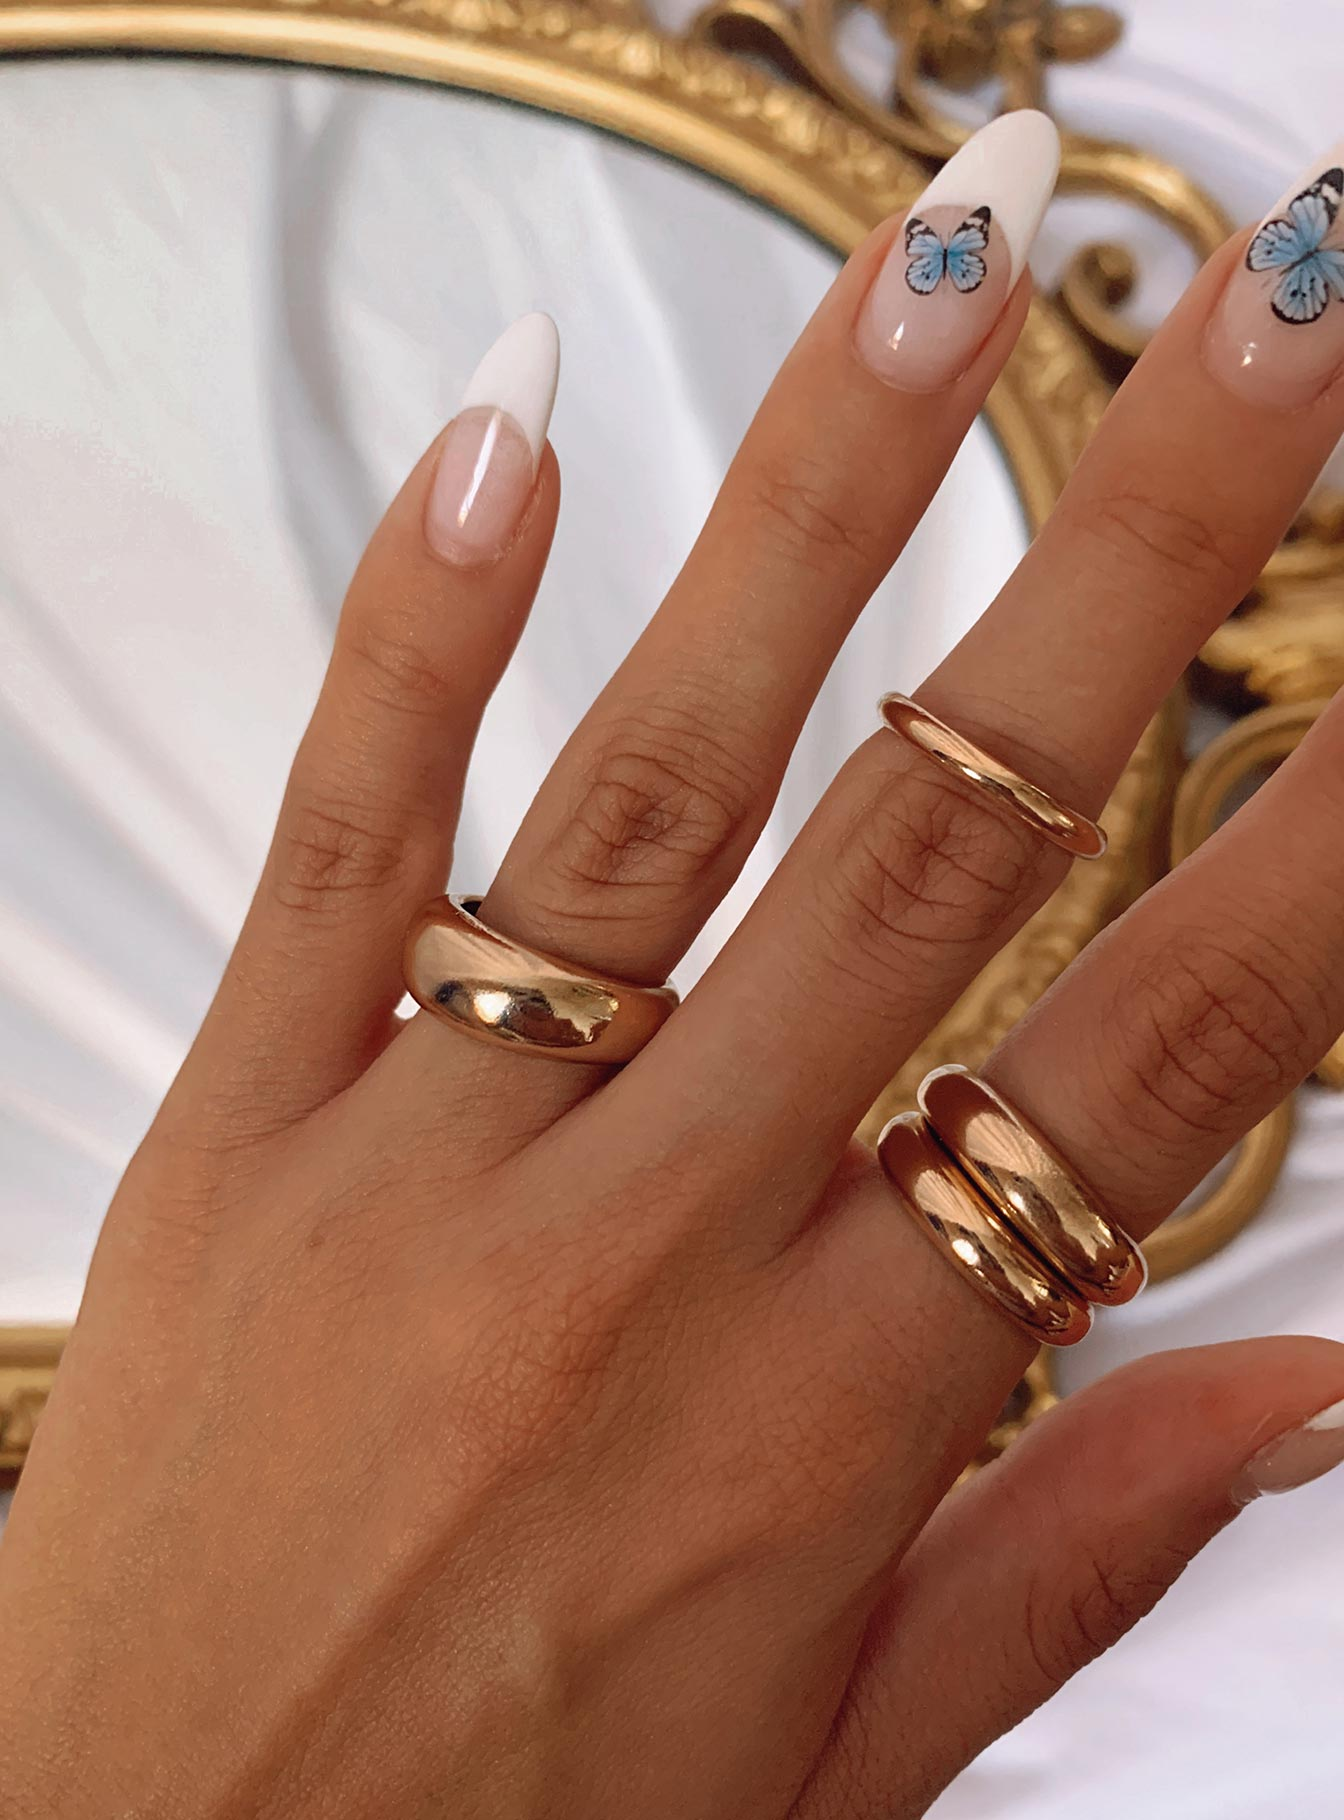 Rings (Side A)